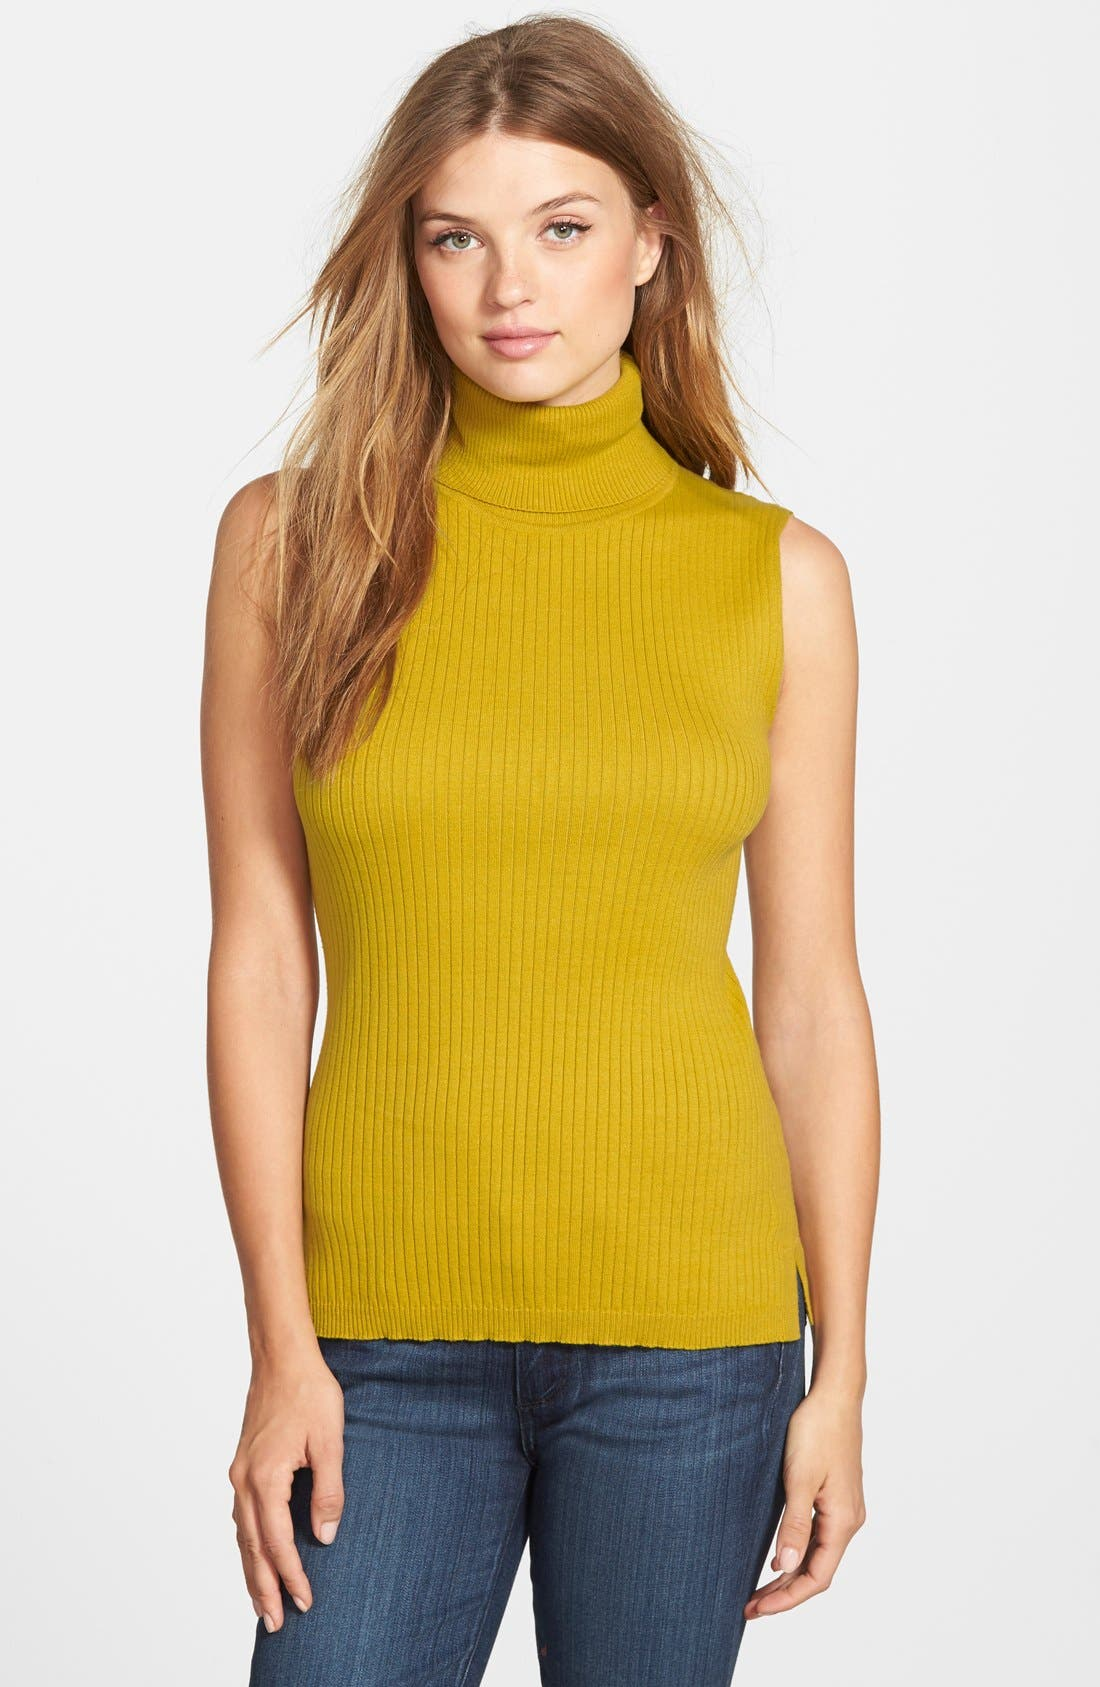 Alternate Image 1 Selected - Vince Camuto Sleeveless Ribbed Turtleneck Sweater (Regular & Petite)